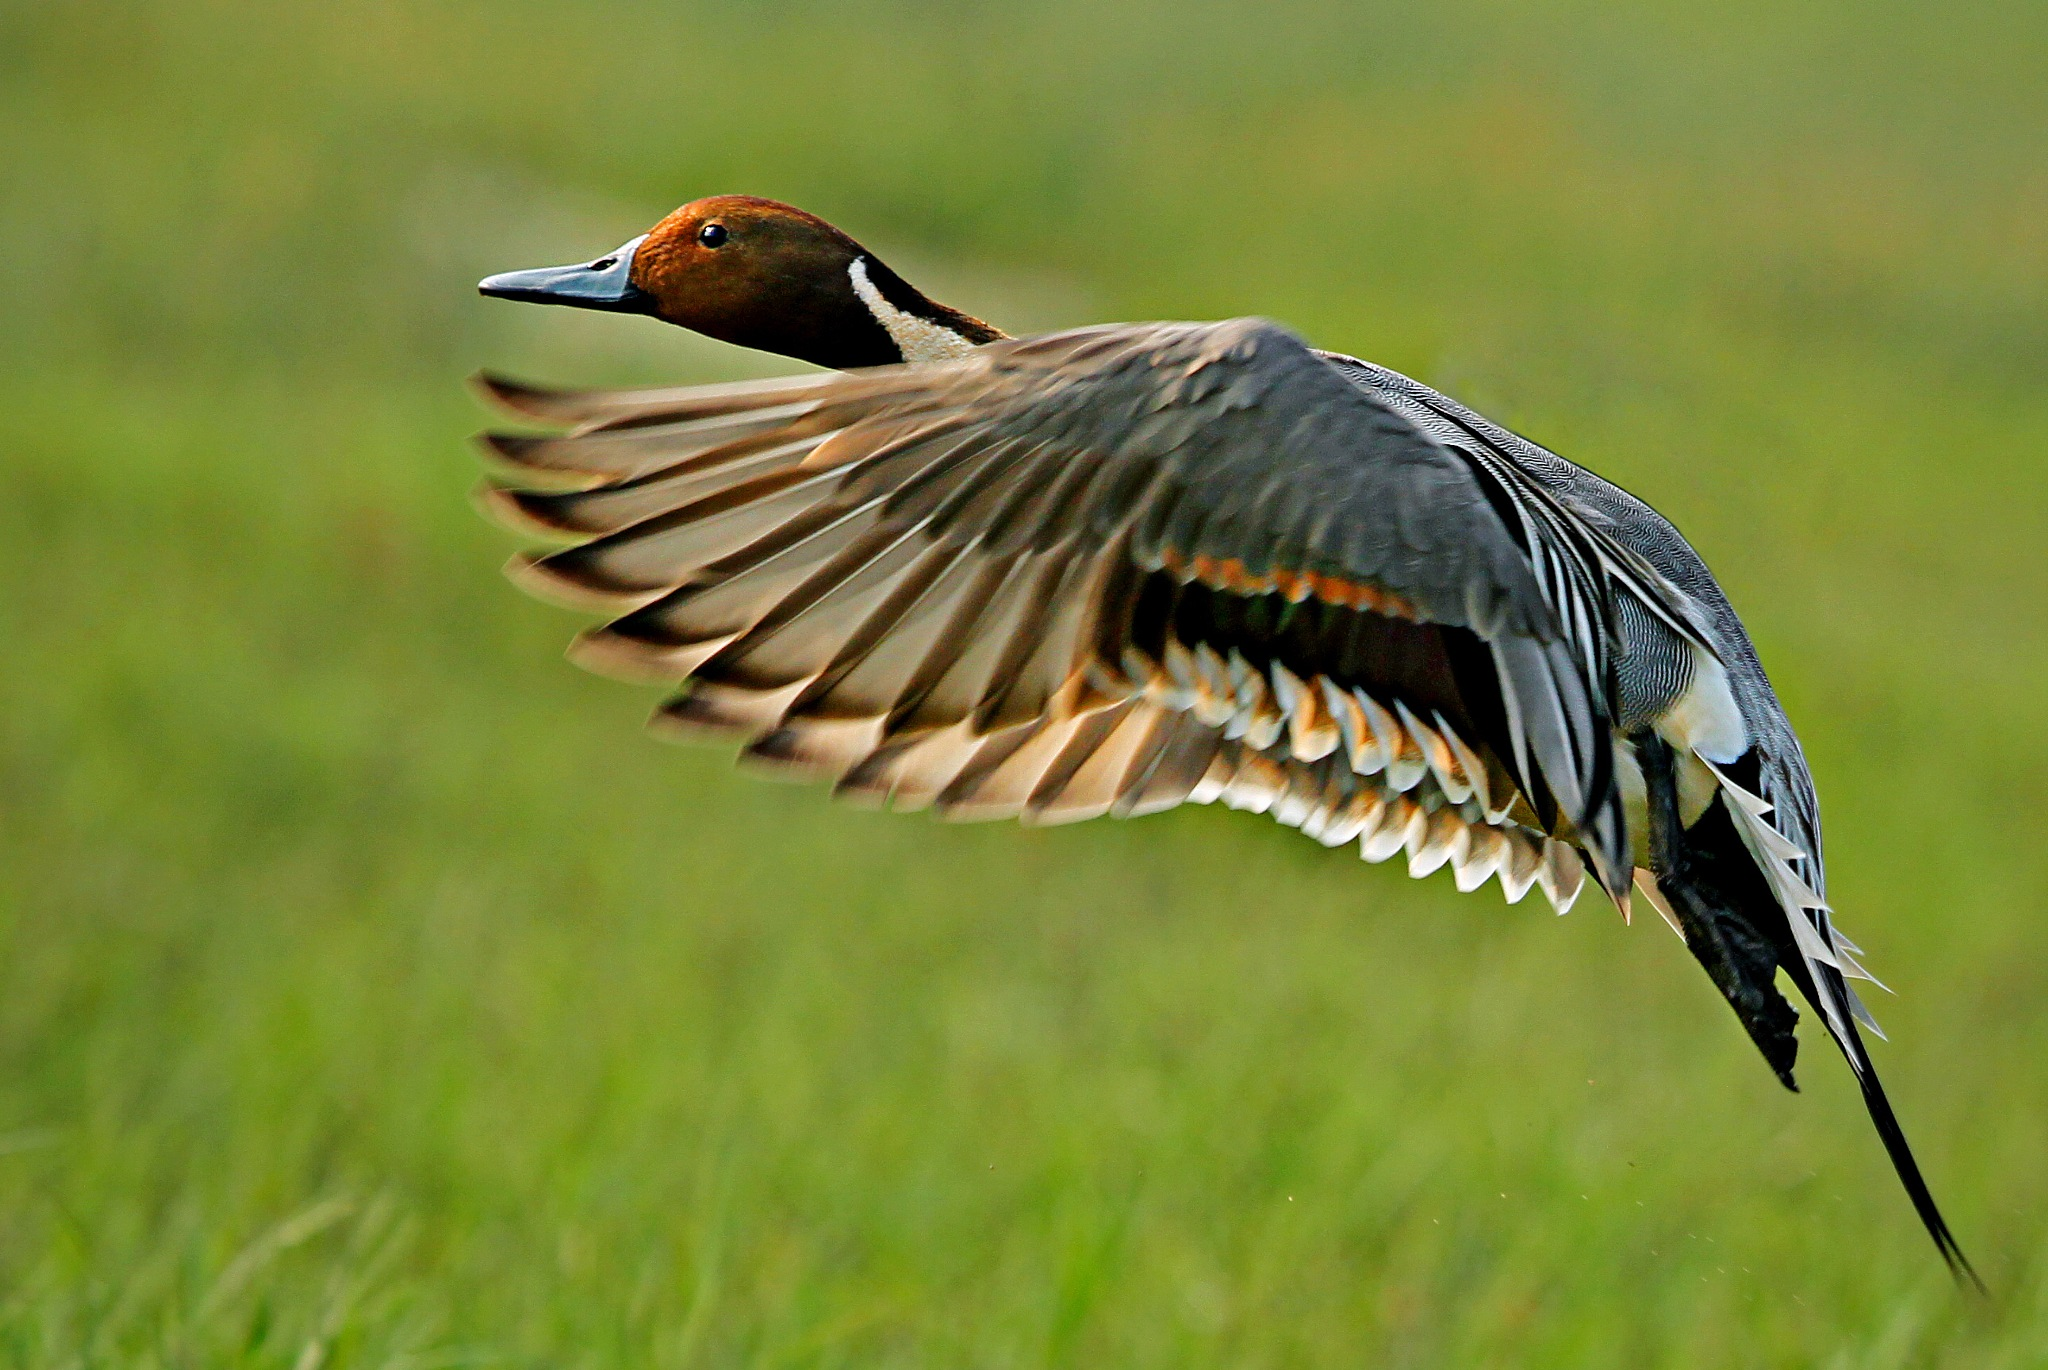 Northern pintail by shibram